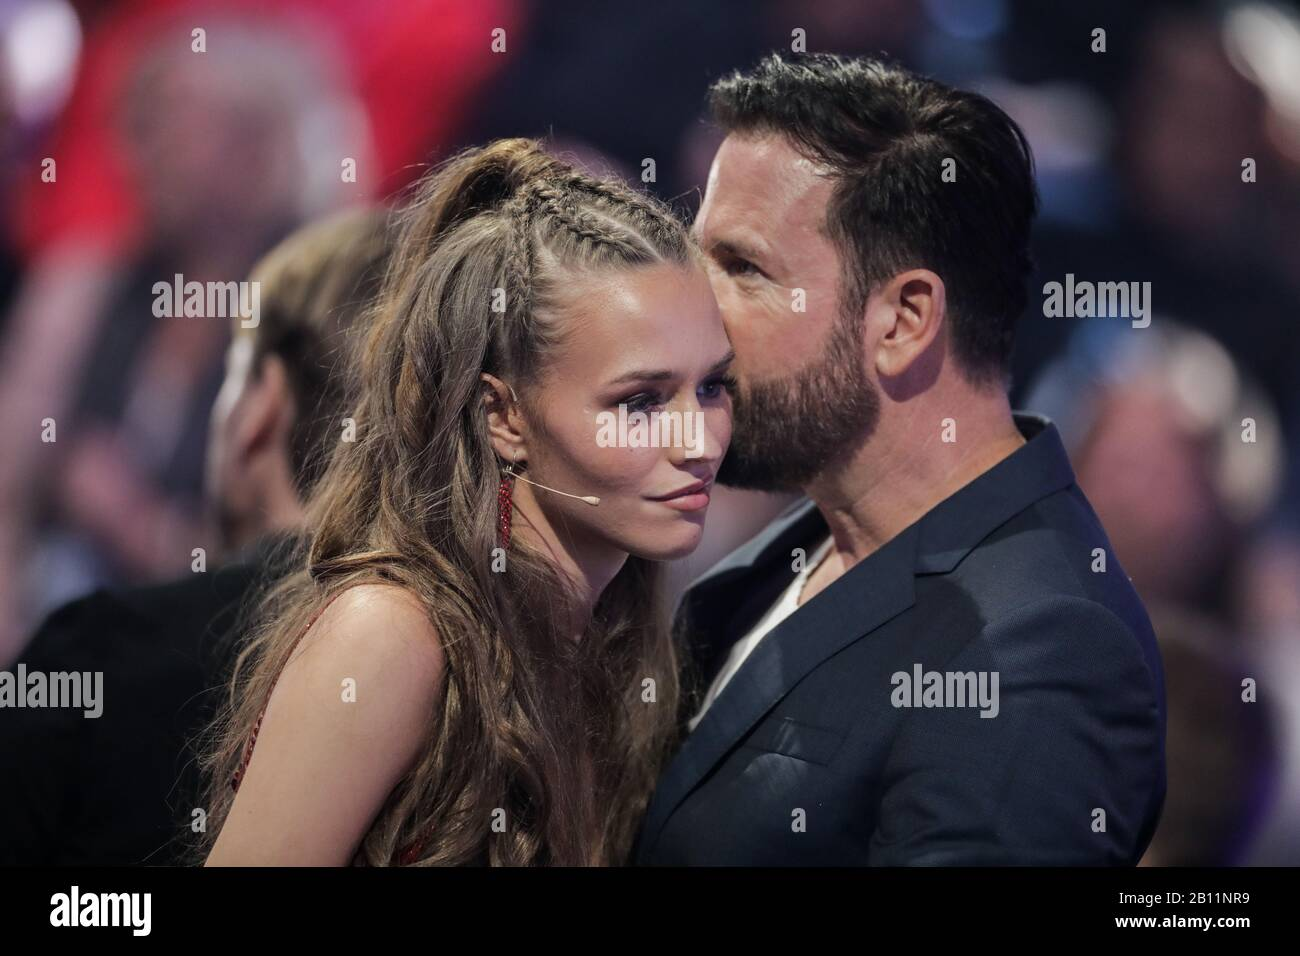 Cologne Germany 21st Feb 2020 Laura Muller Tv Personality And Michael Wendler Singer Are Not Getting